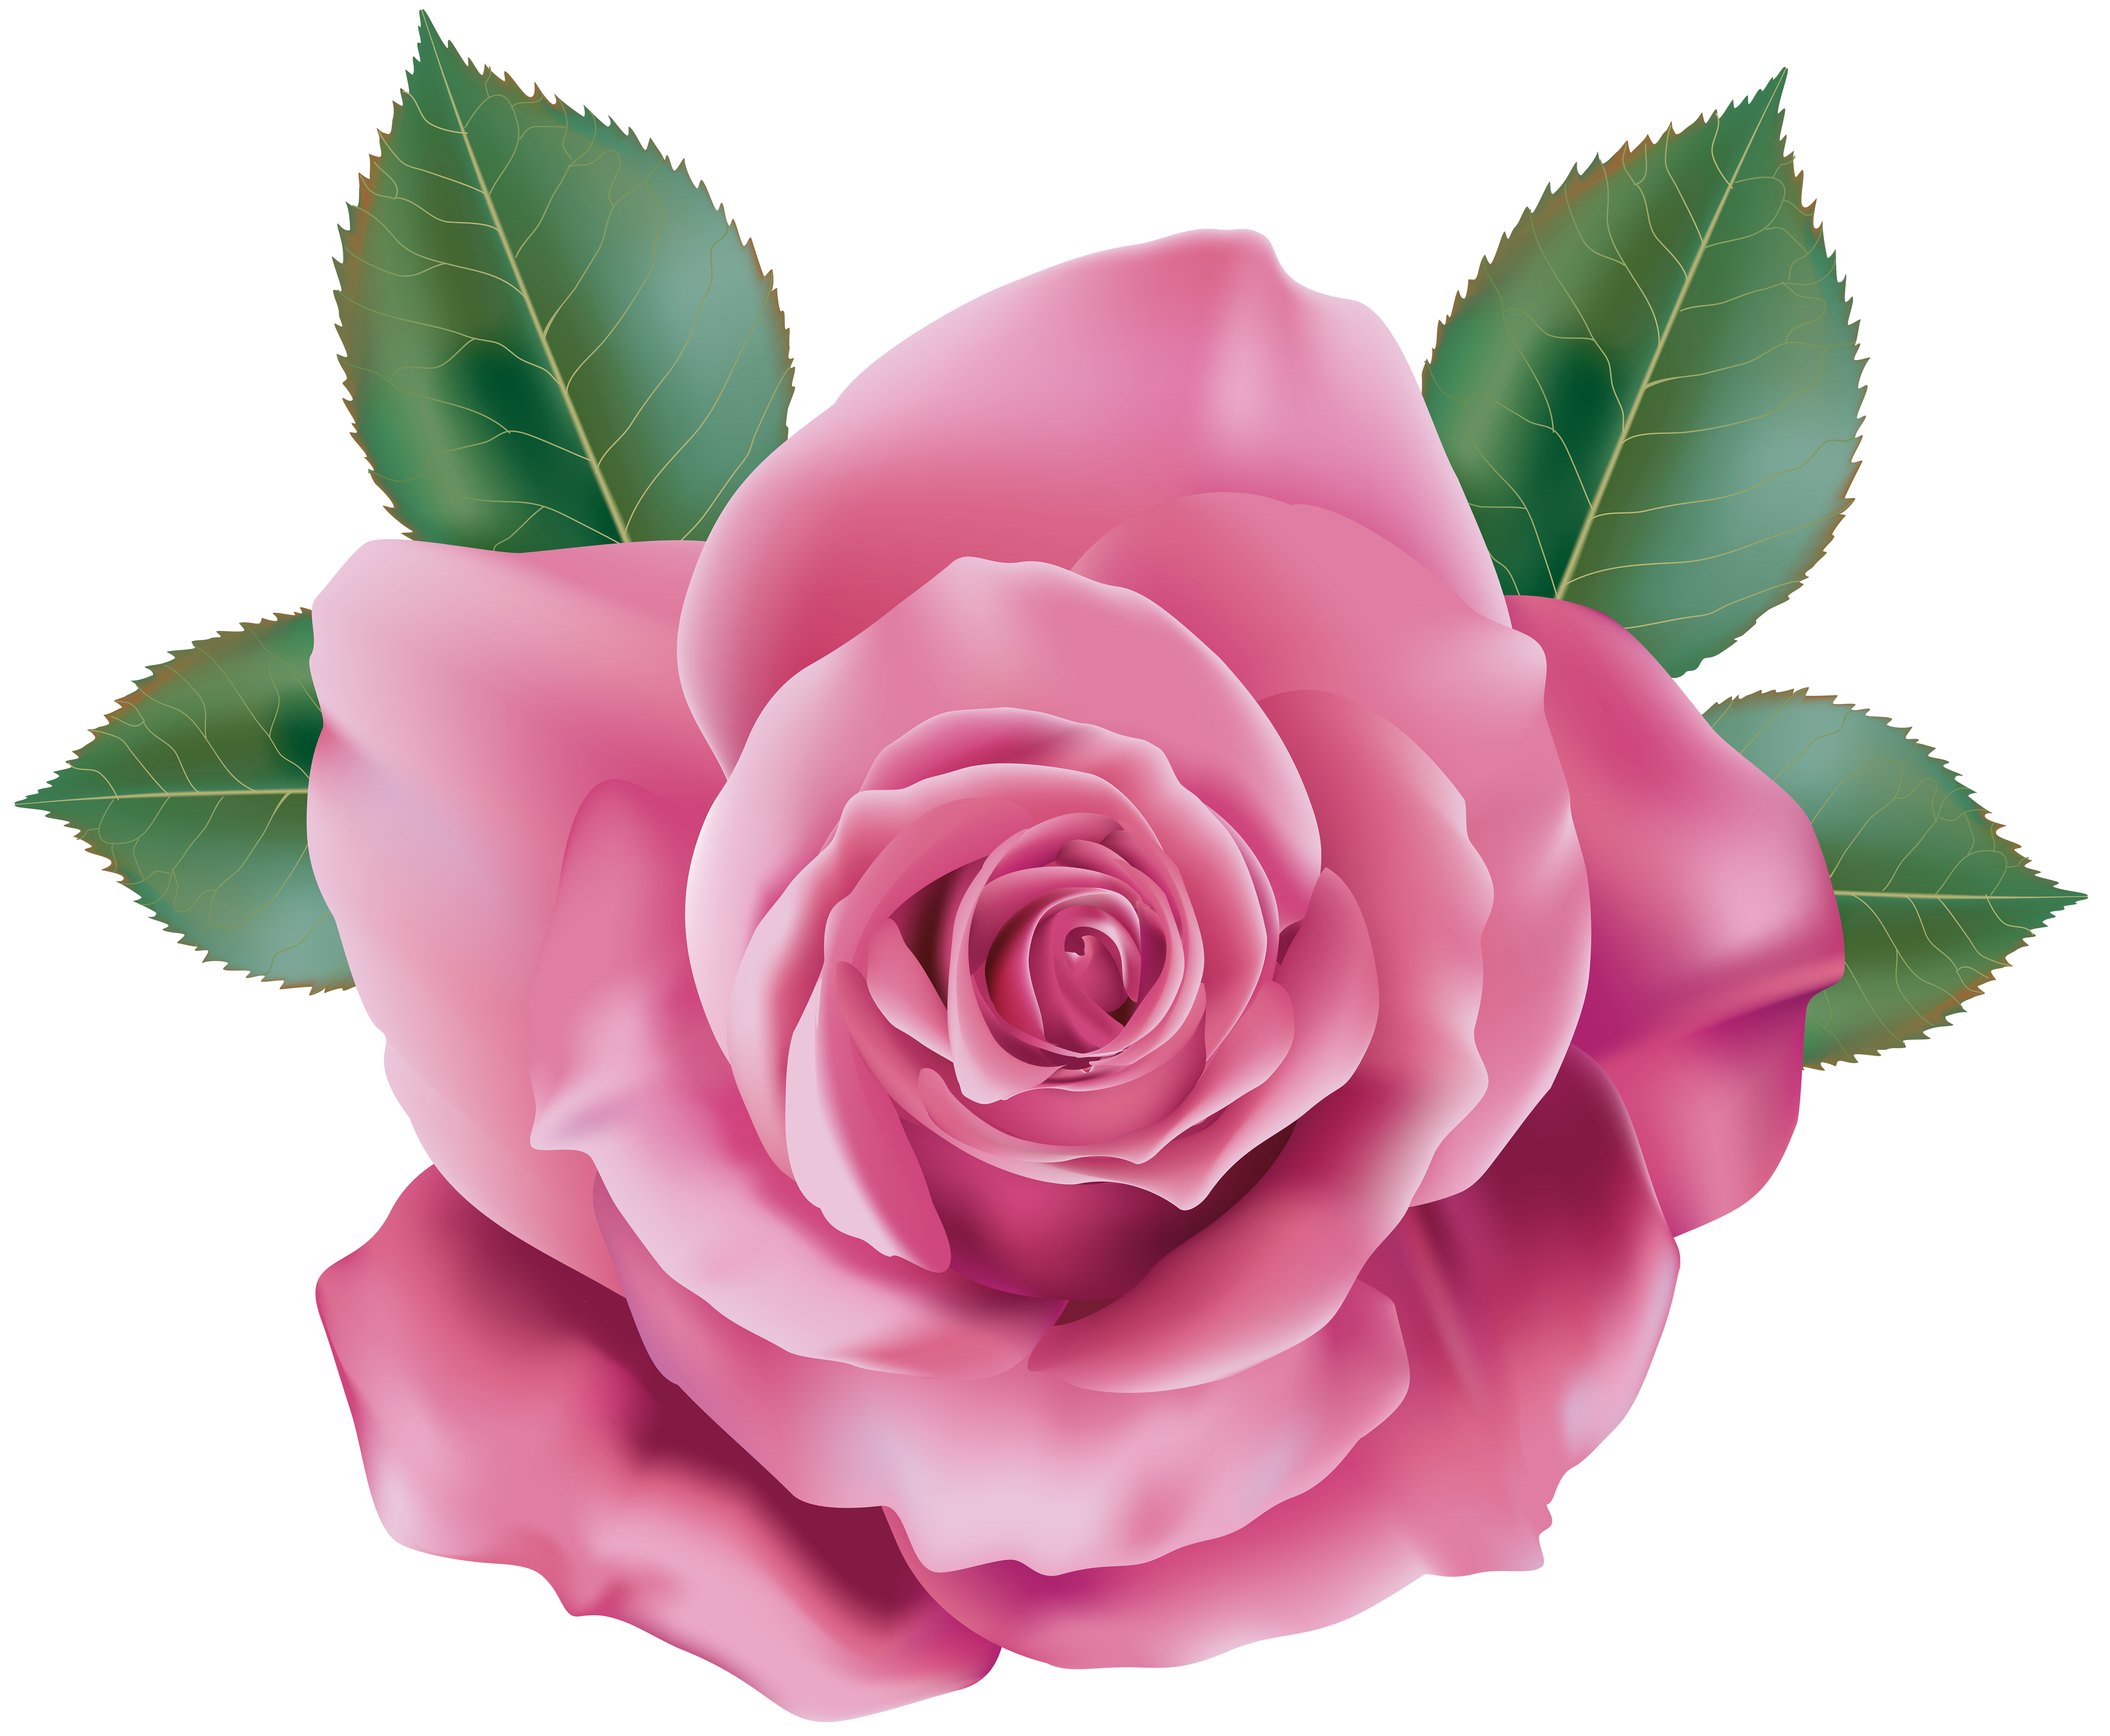 Pink rose flower clipart clip art royalty free Pin by Linda Carter on CLIPART3 | Flowers, Rose clipart ... clip art royalty free